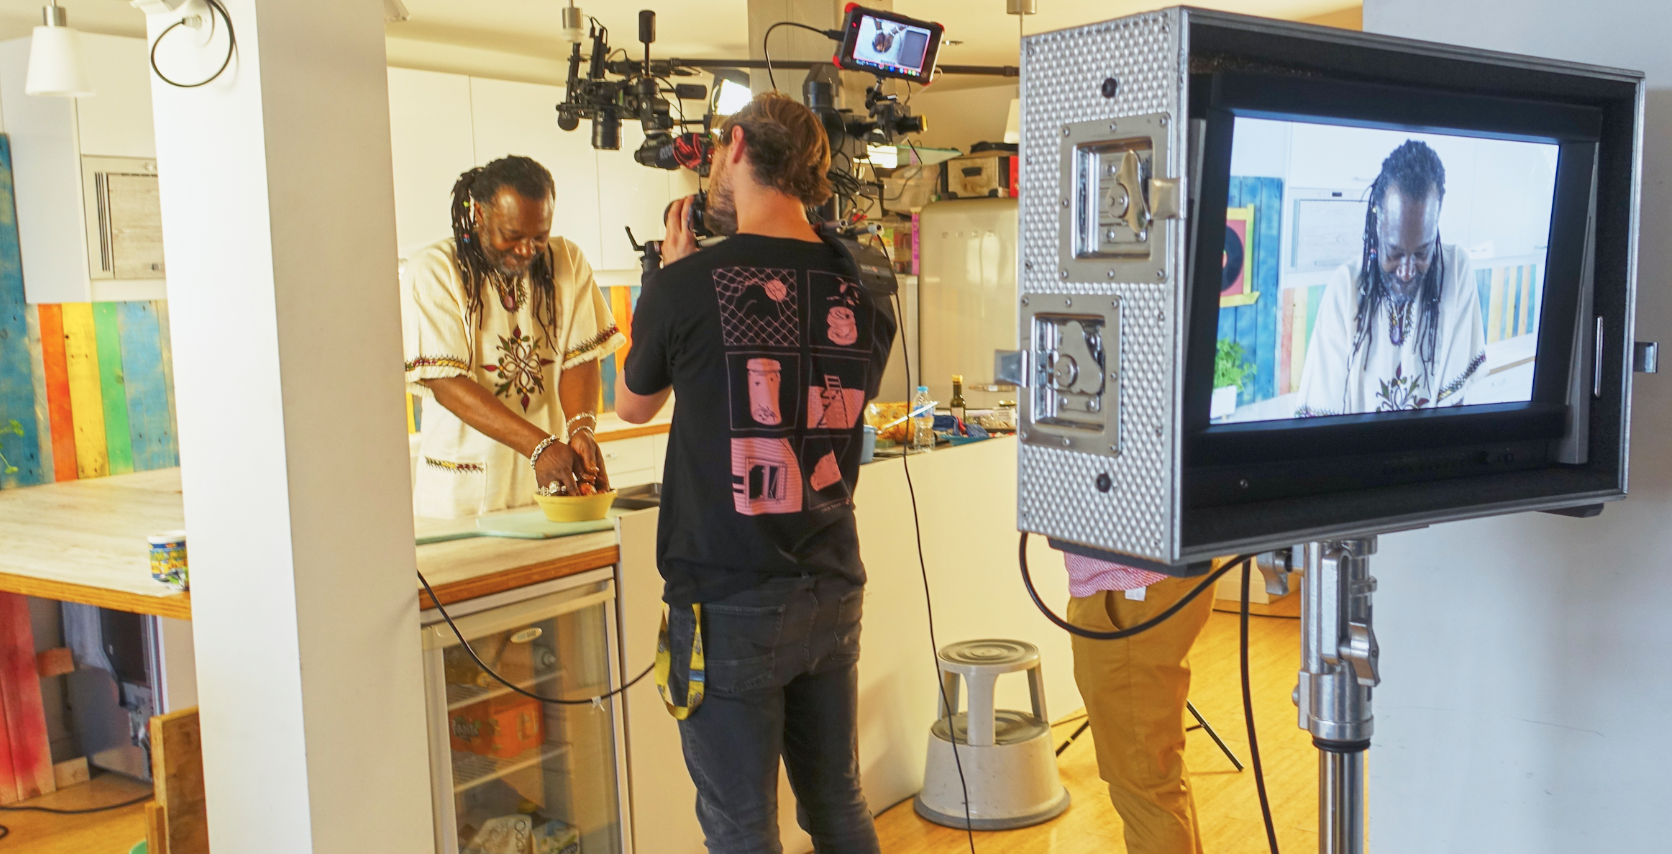 Behind the scenes of the Levi Roots set